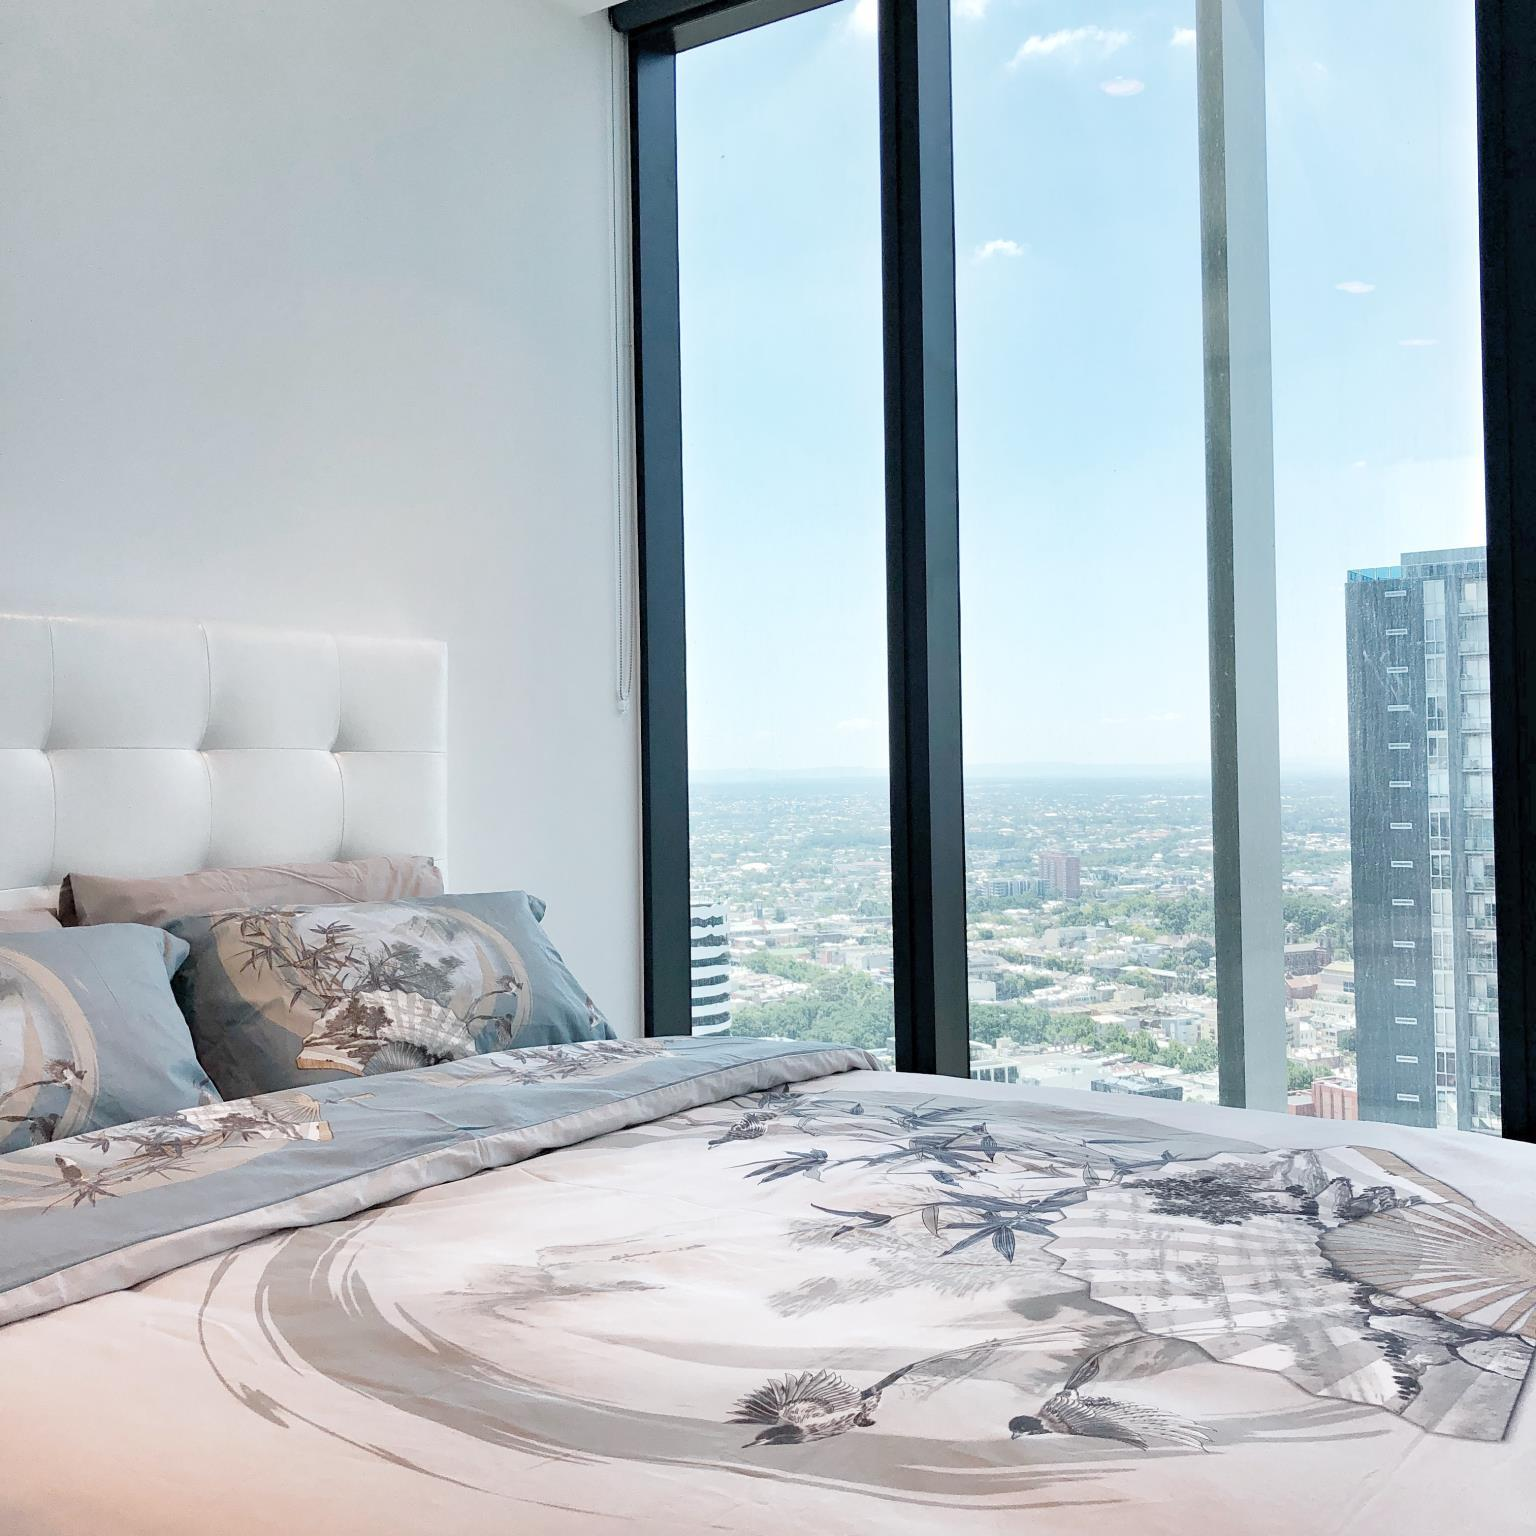 CBD Best Location Family And Couples Perfect Stay